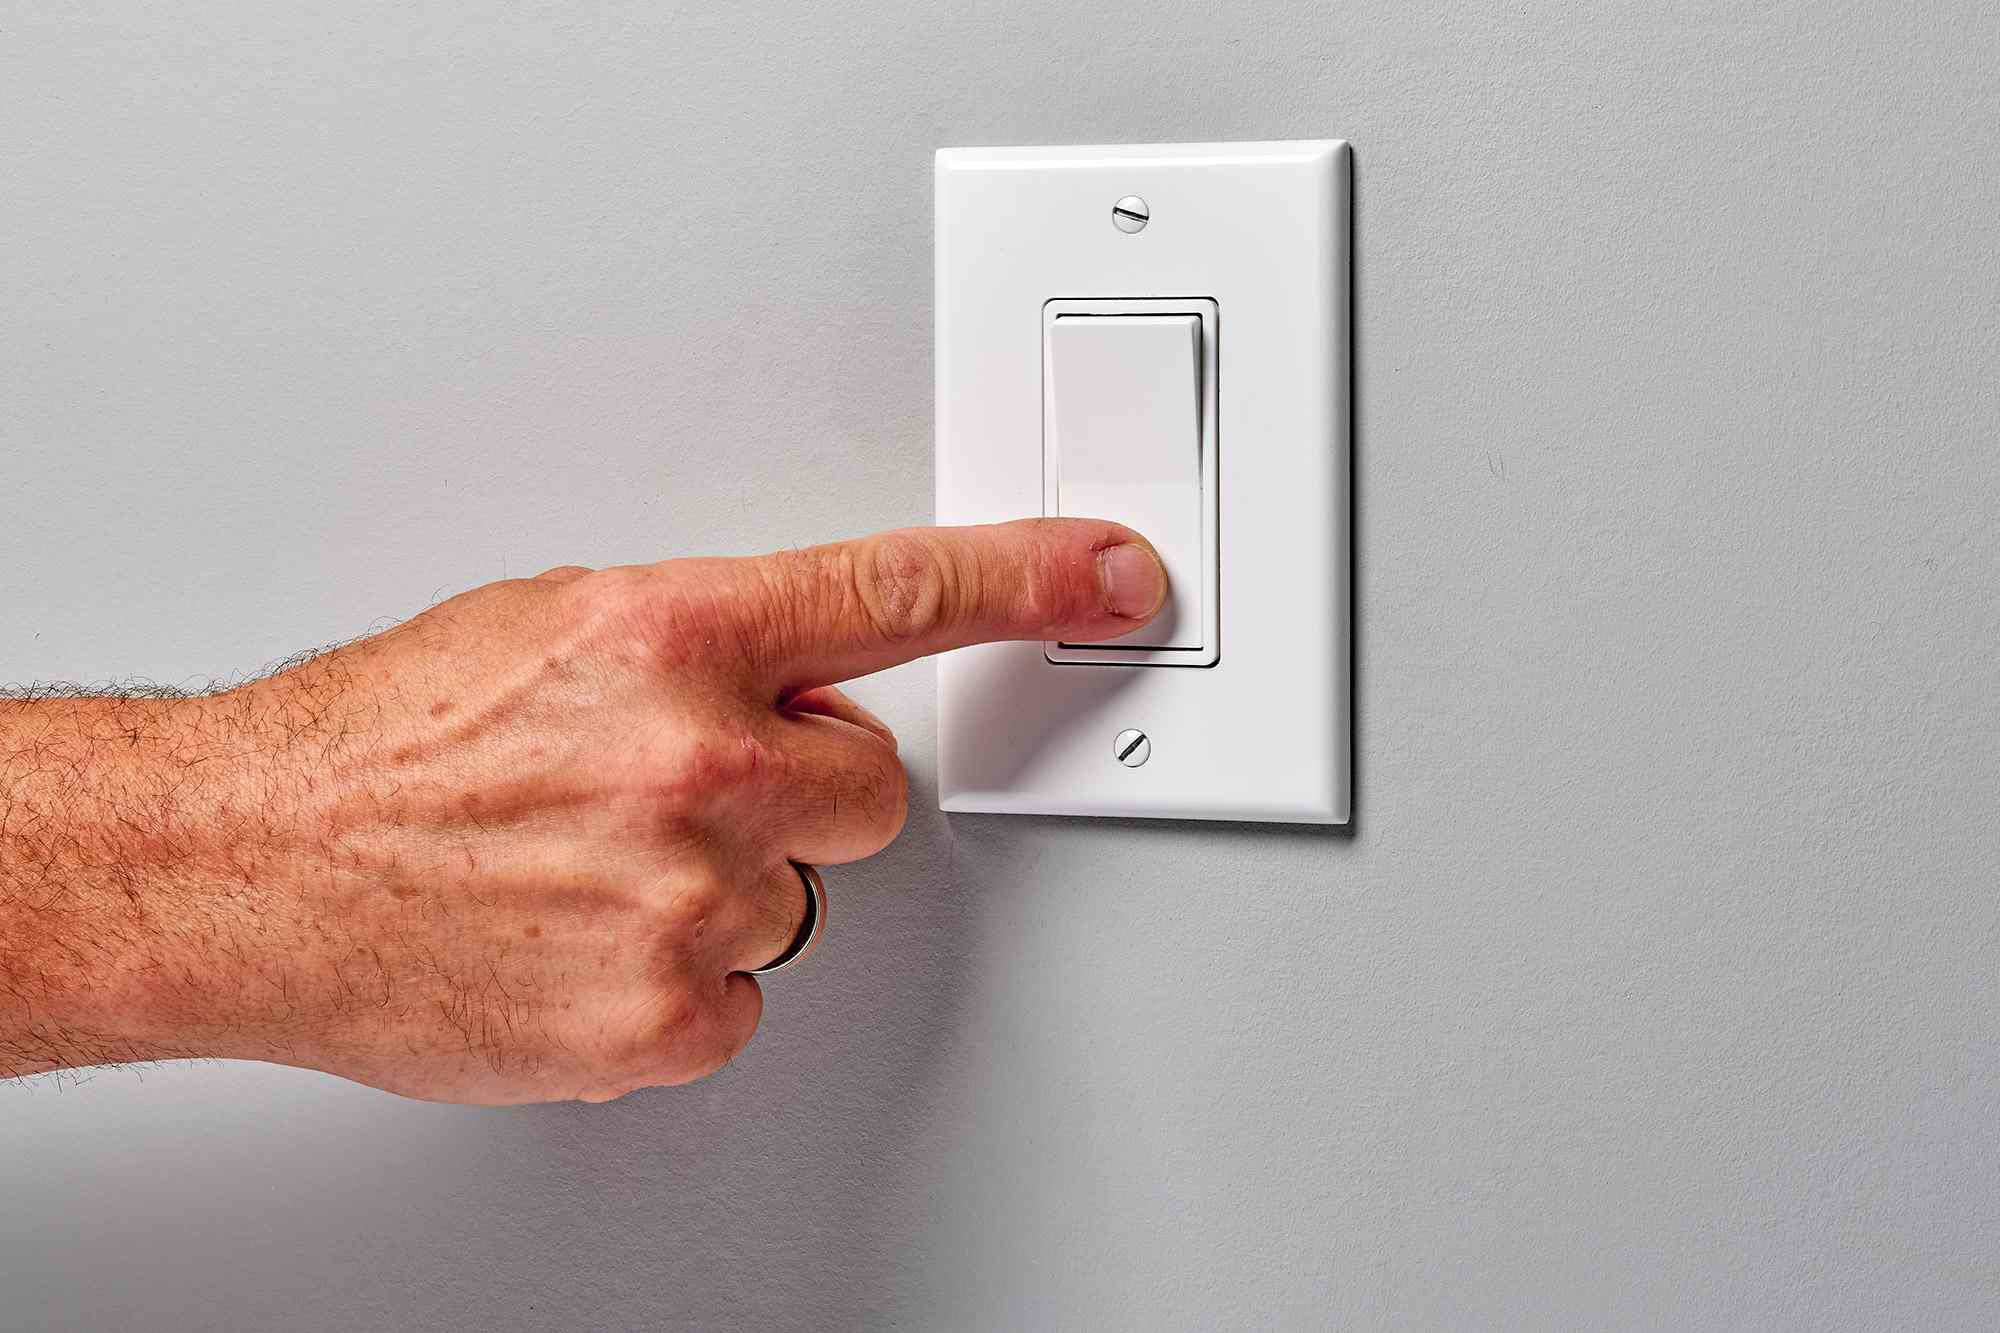 Light switch pressed and turned off